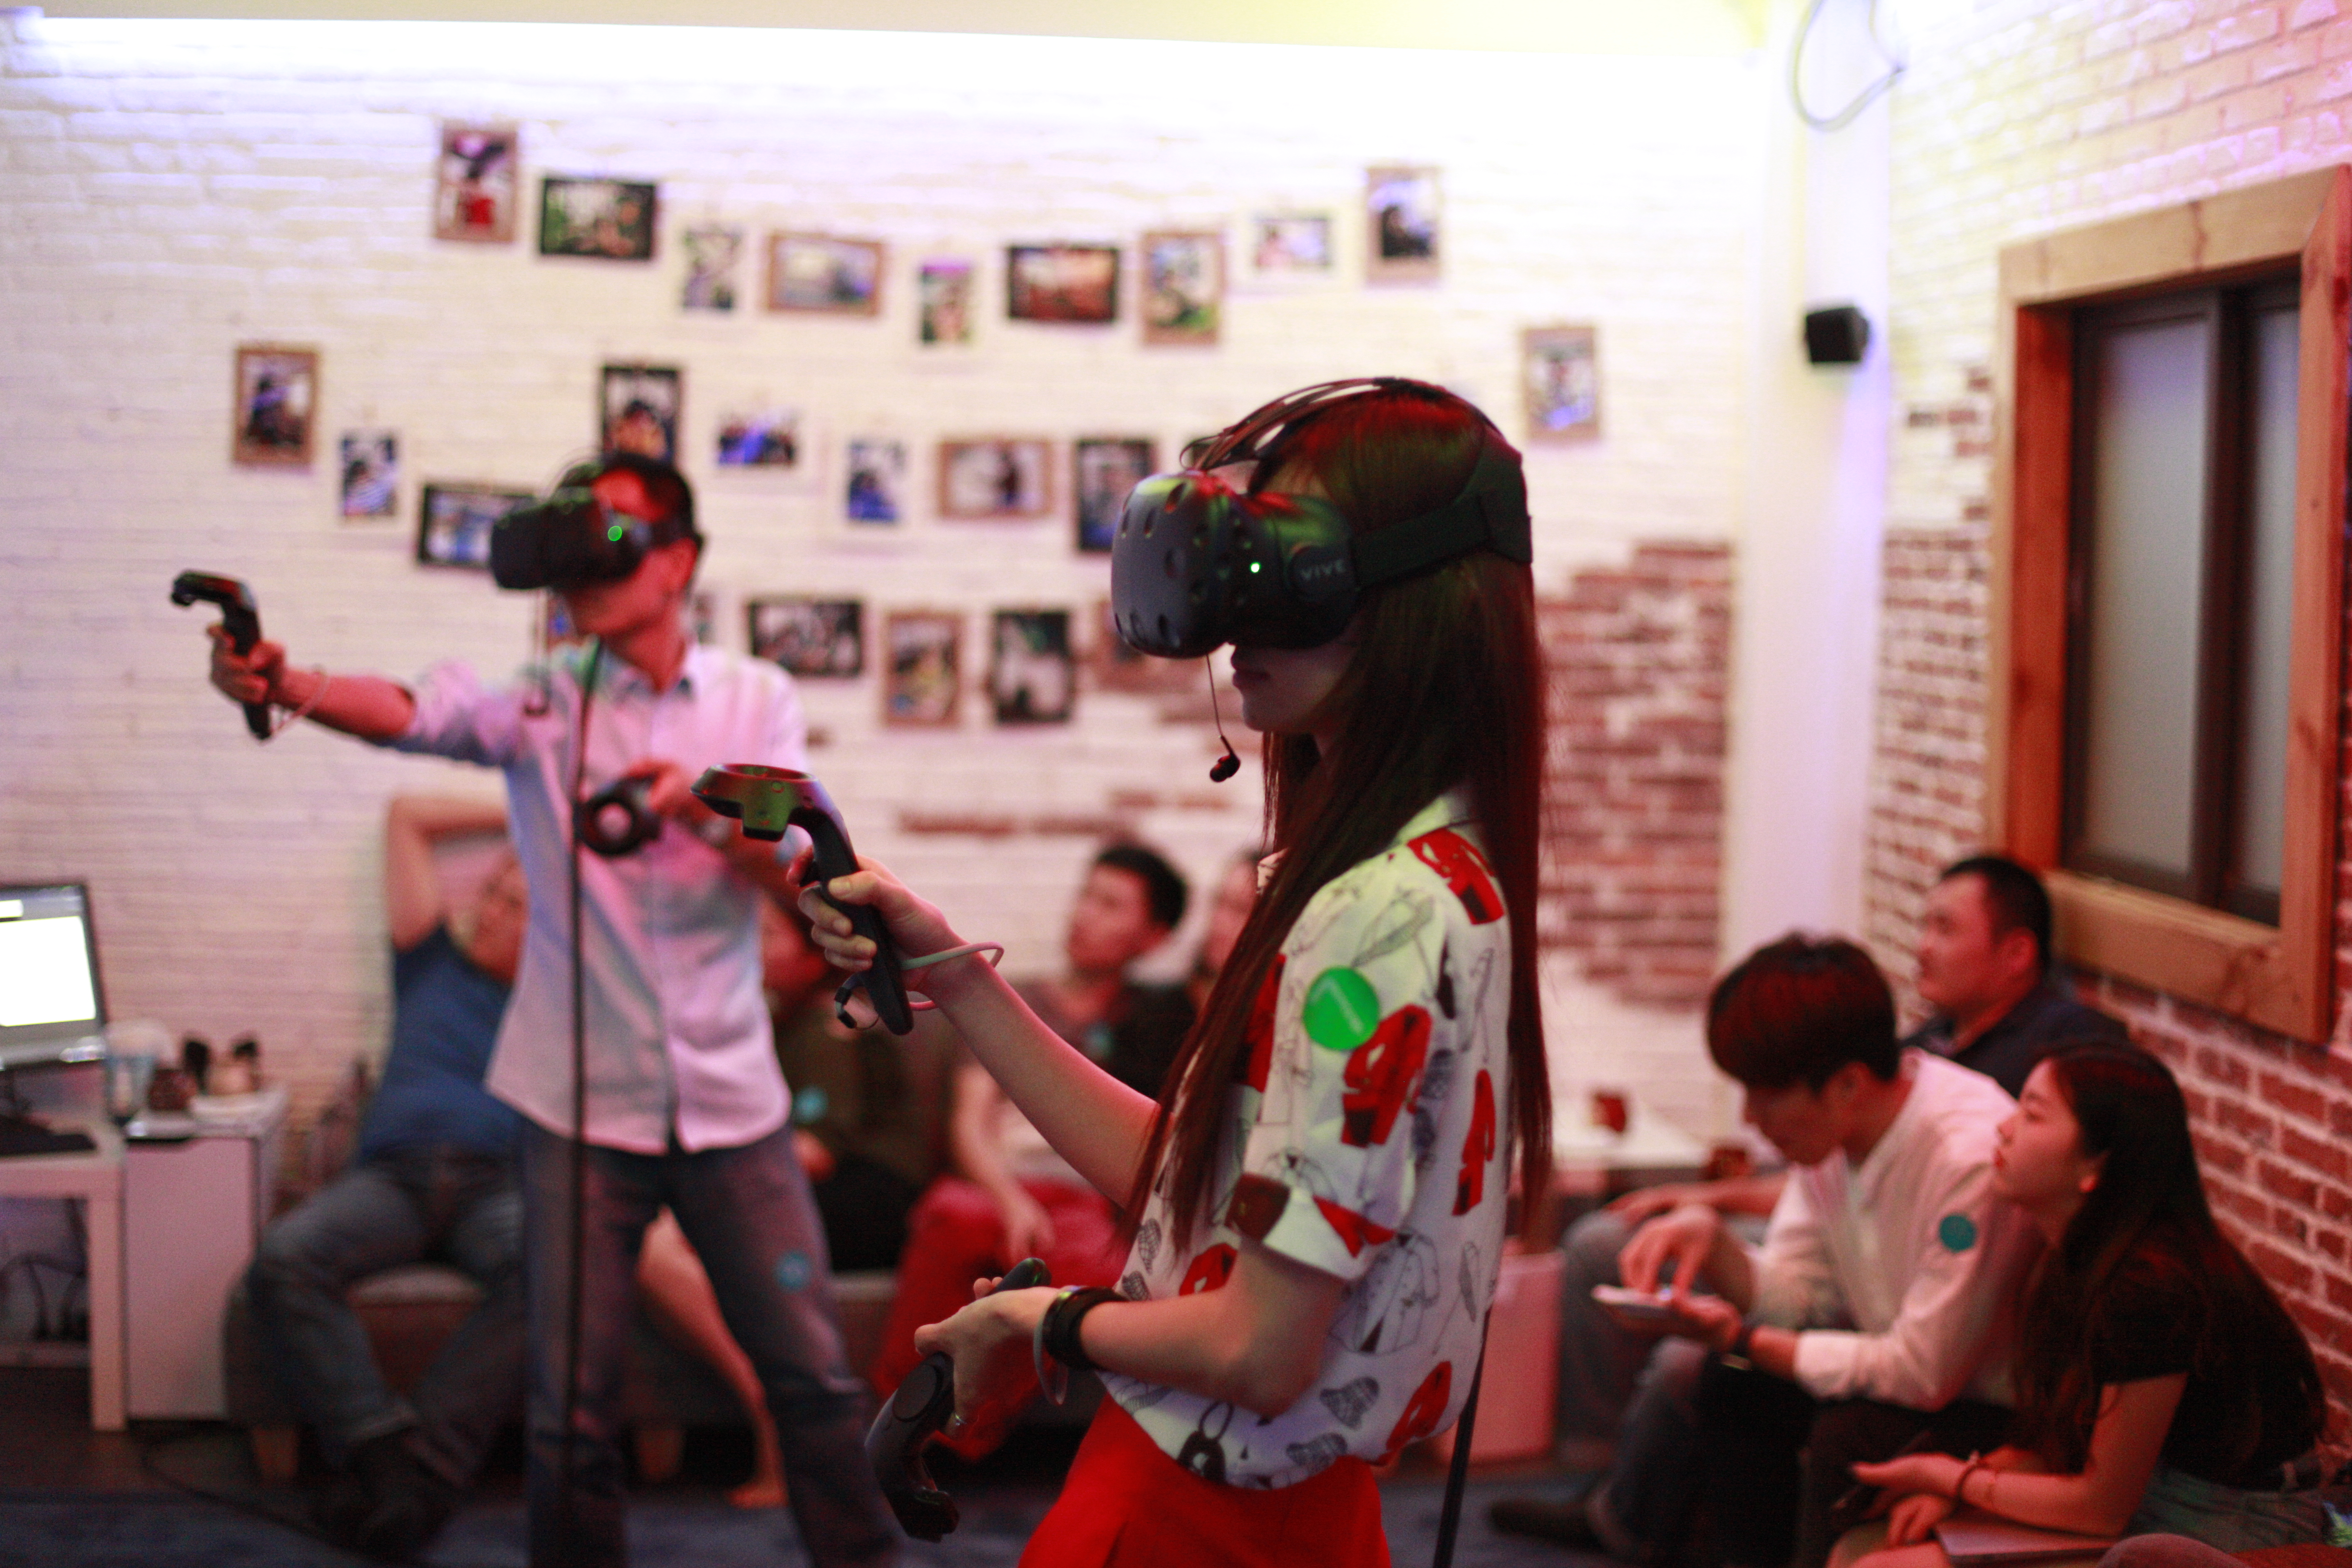 vr lounge china shenzhen